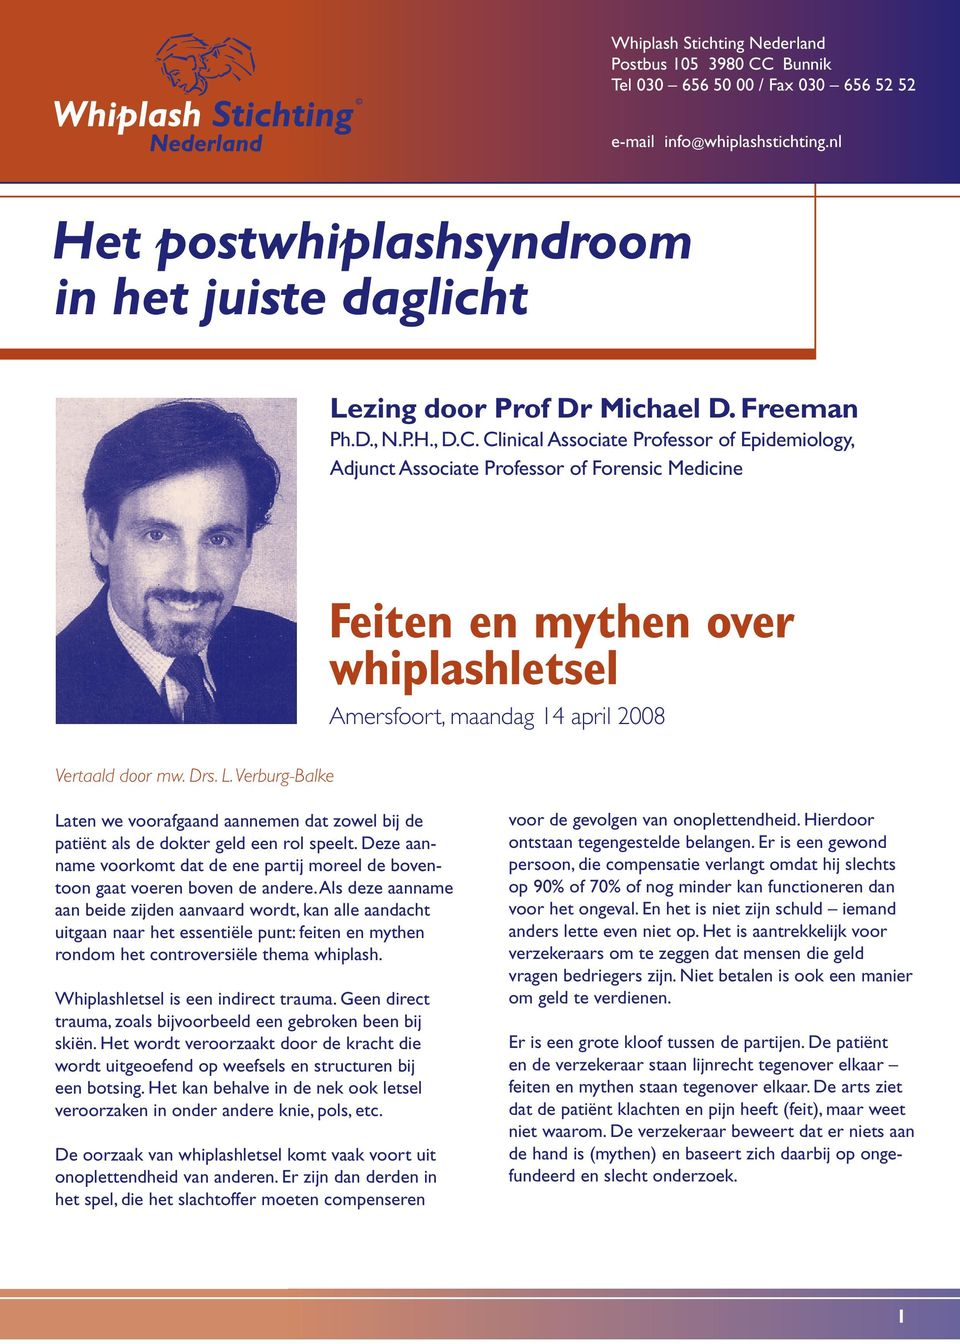 Clinical Associate Professor of Epidemiology, Adjunct Associate Professor of Forensic Medicine Feiten en mythen over whiplashletsel Amersfoort, maandag 14 april 2008 Vertaald door mw. Drs. L.